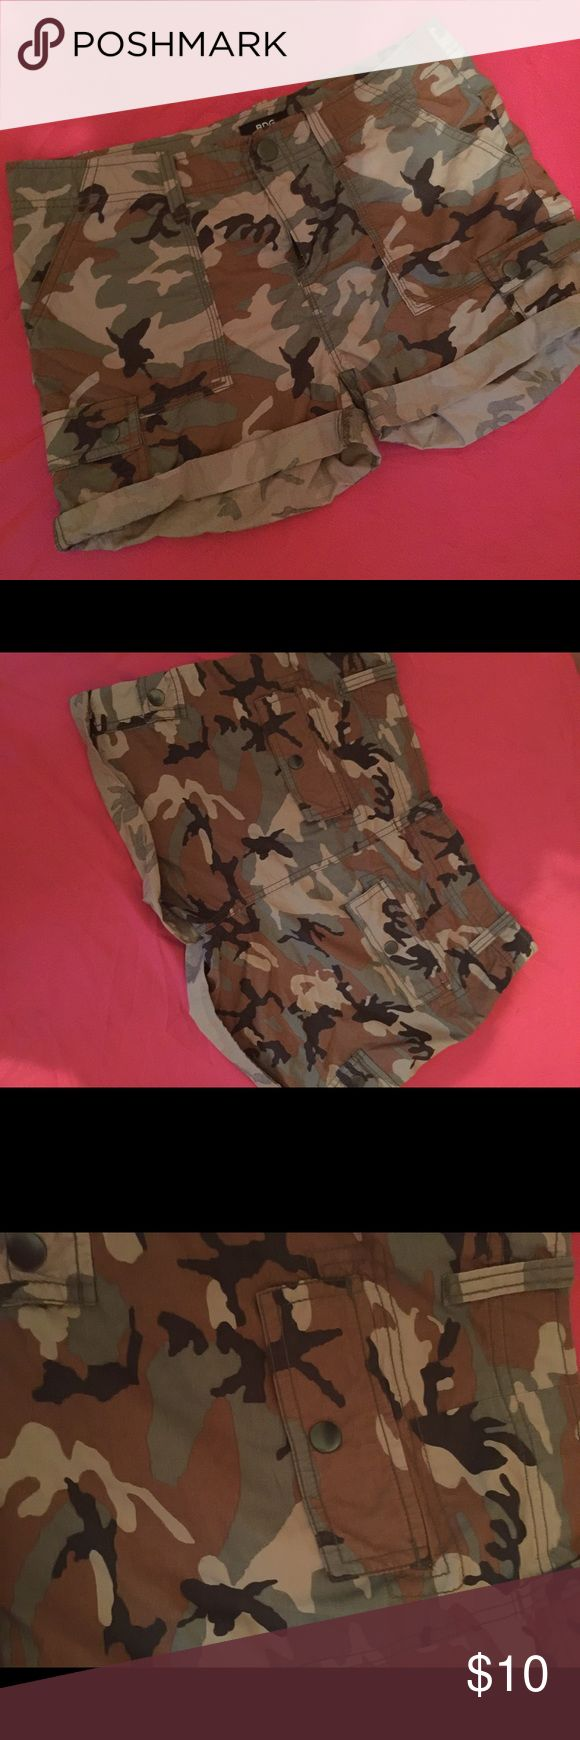 BDG Camouflage Shorts Size 4 This is a pair of BDG size 4 camouflage shorts. They are preowned but in like new condition and soooo cute!!! BDG Shorts